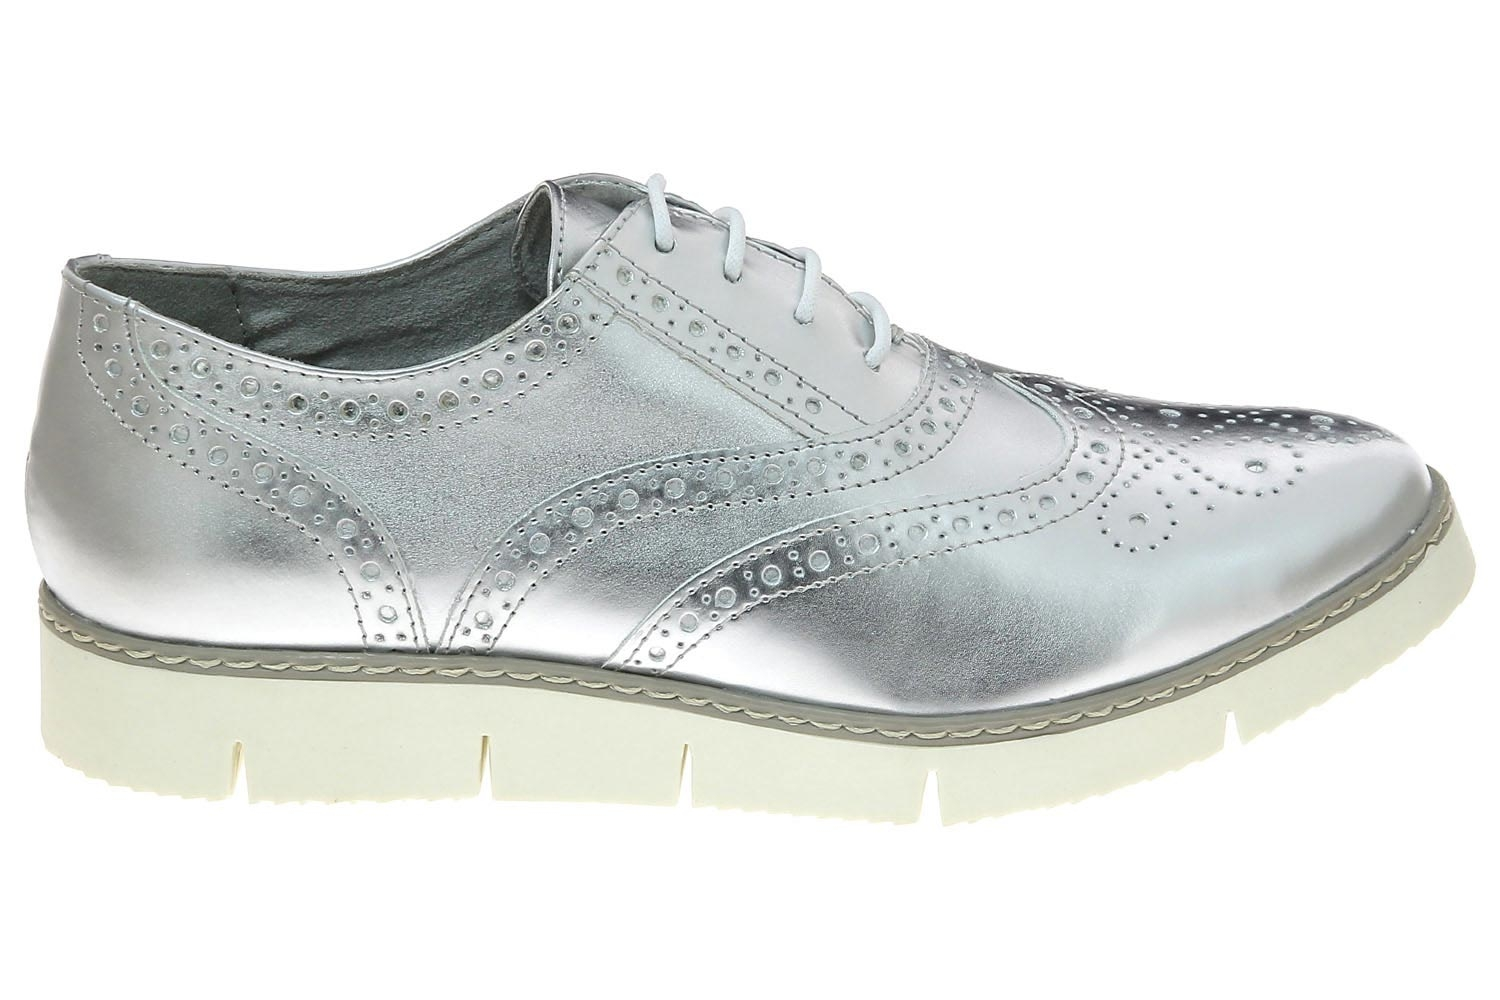 9fbbf53999877 Chaussures plates marco tozzi argent